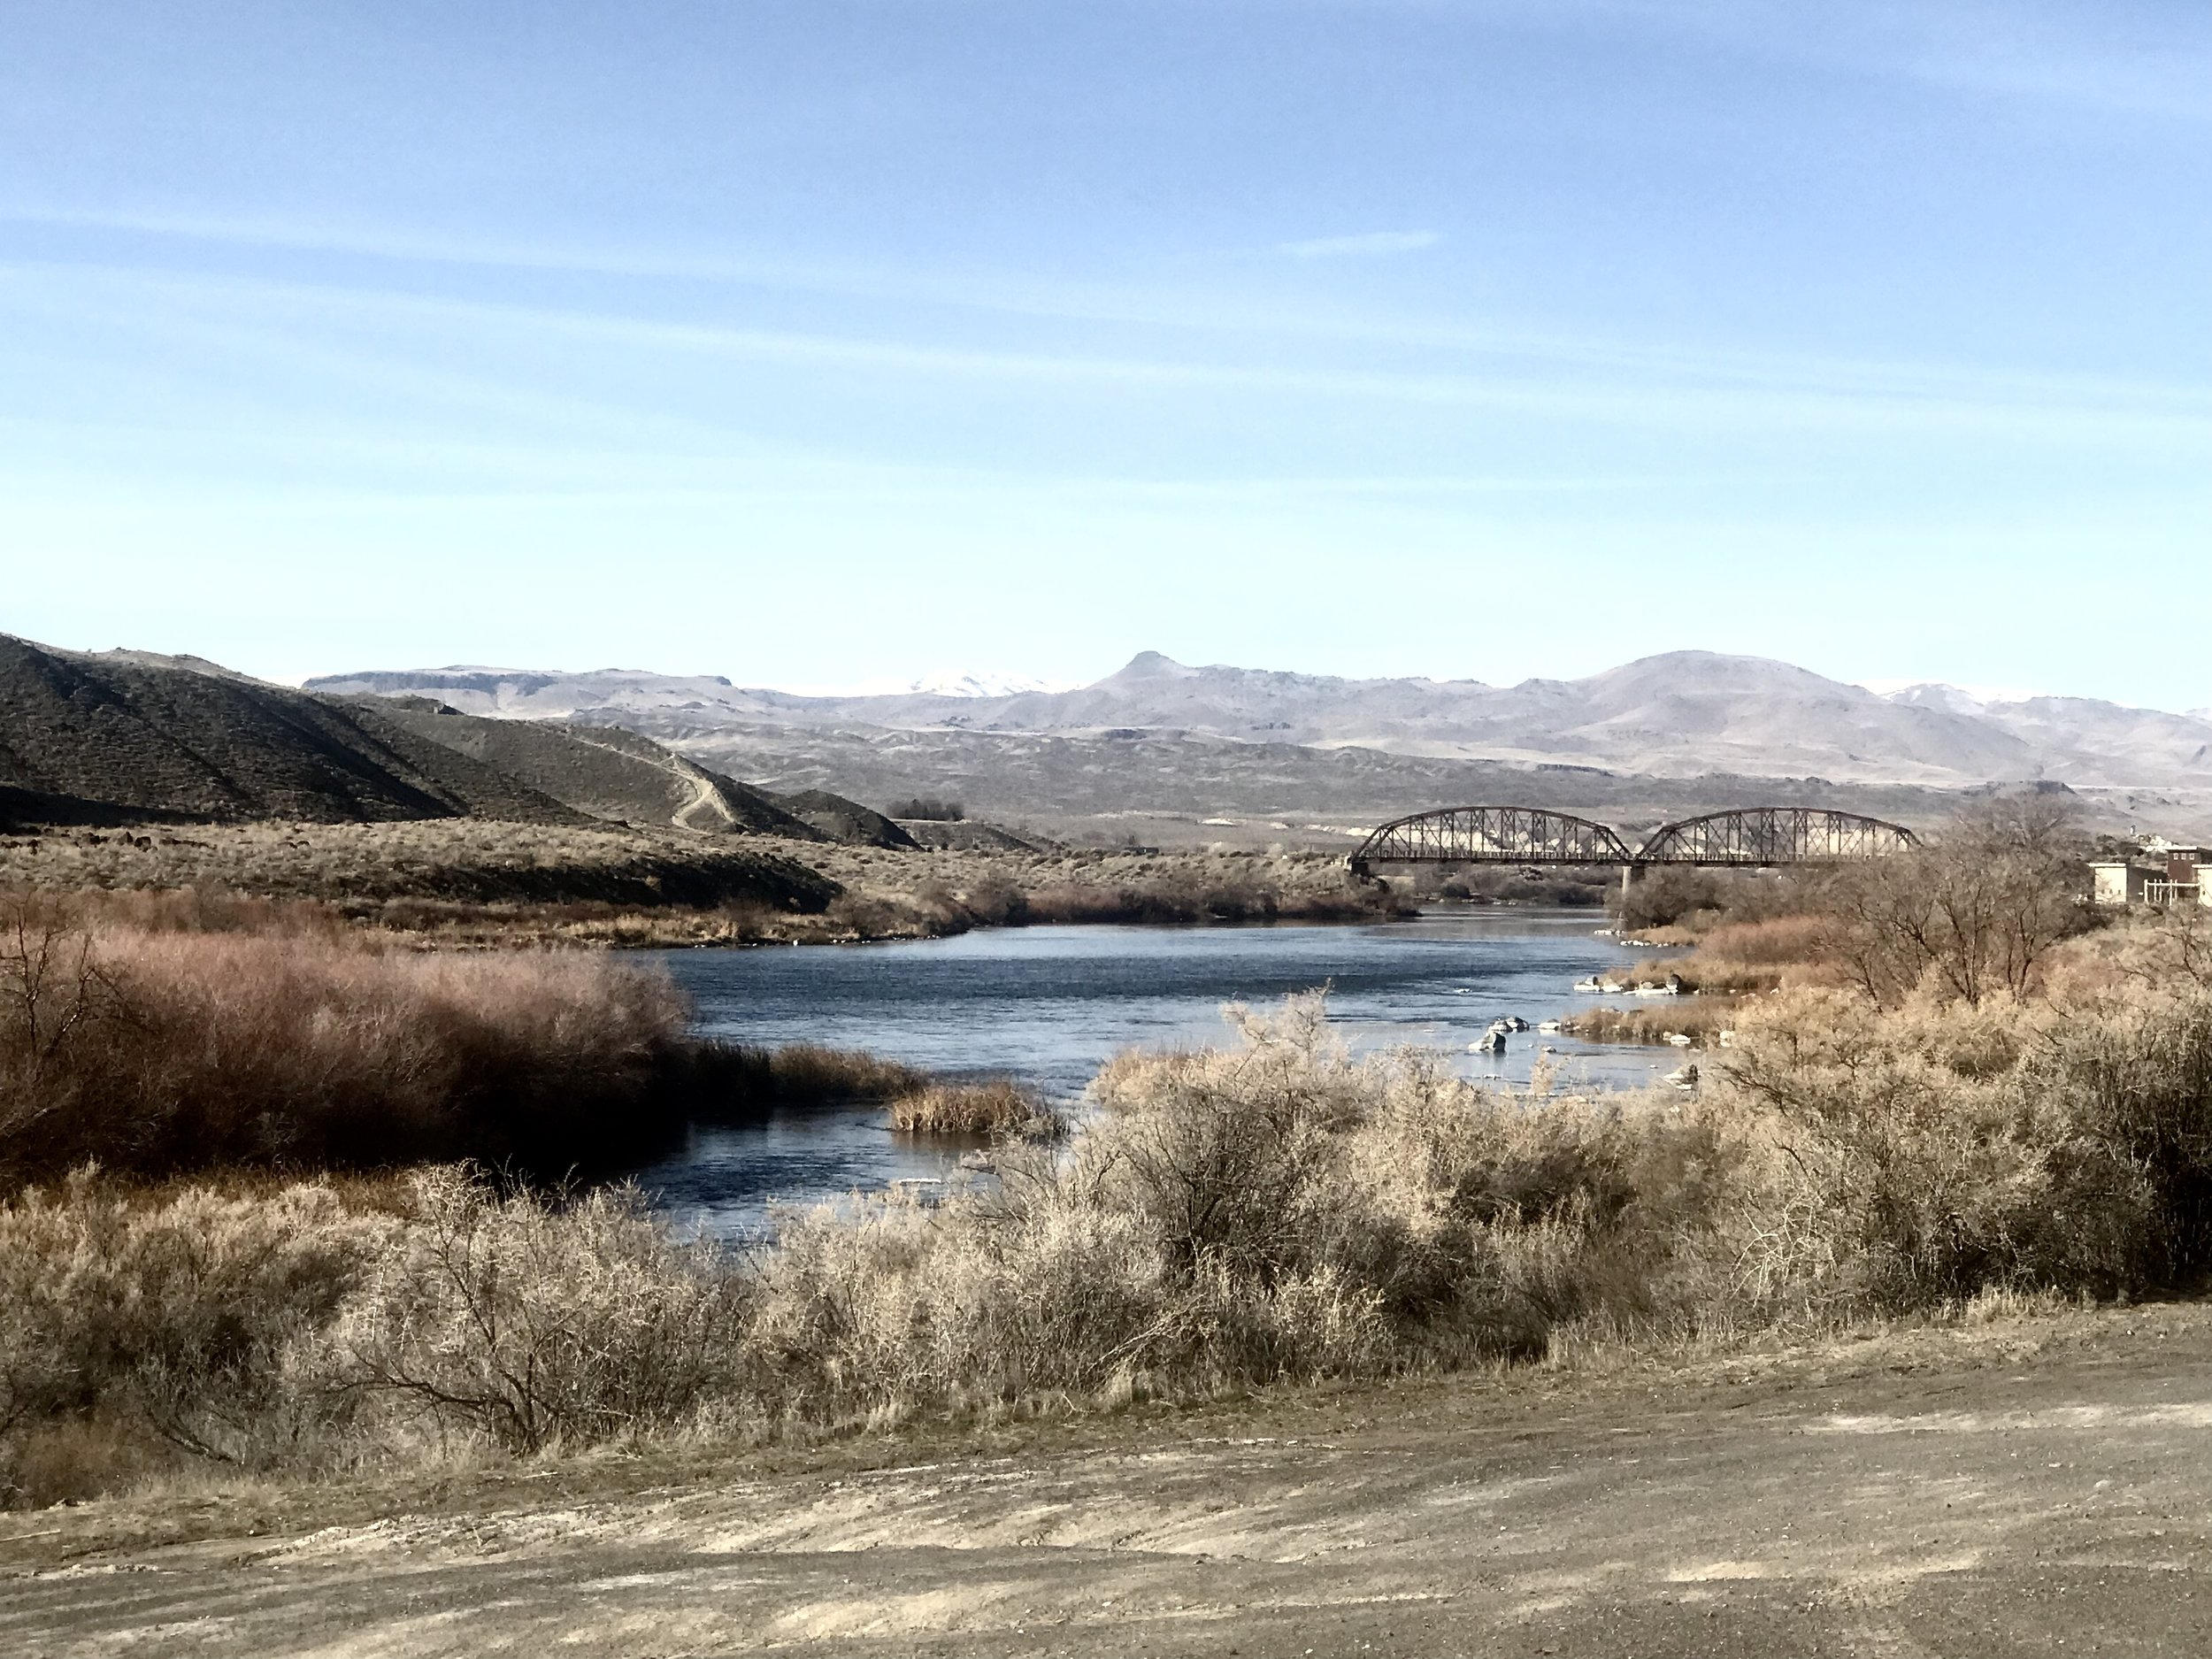 Picture of the foothills in Boise by Snake river